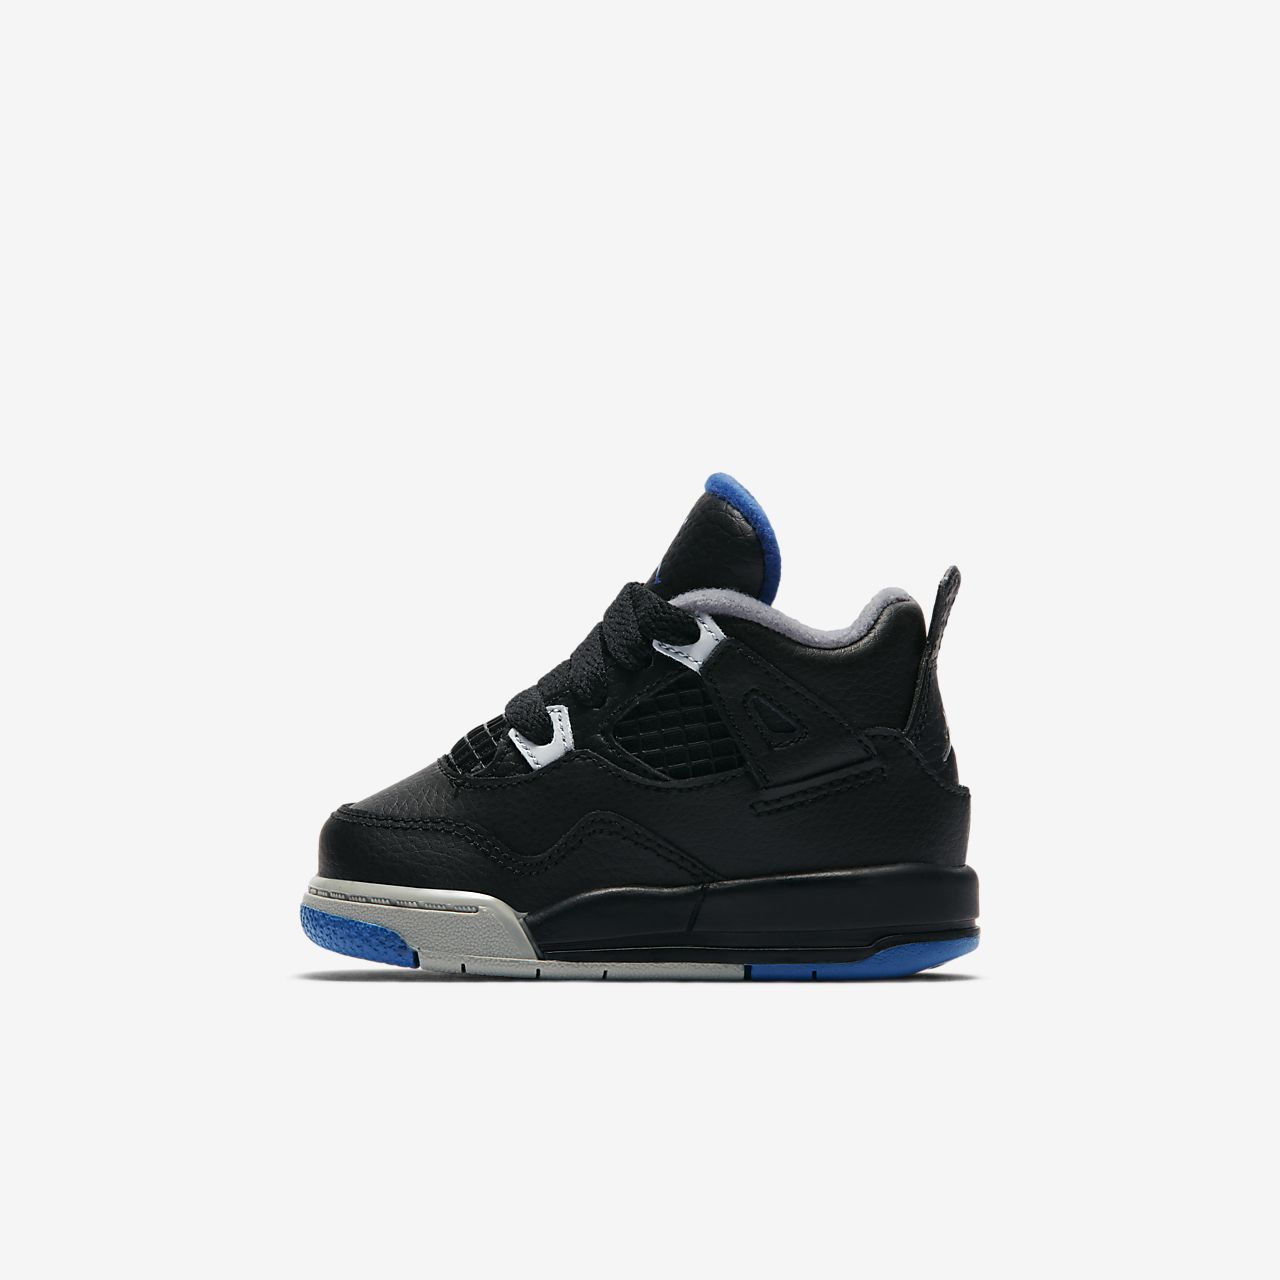 jordan infant shoes. air jordan 4 retro toddler shoe infant shoes